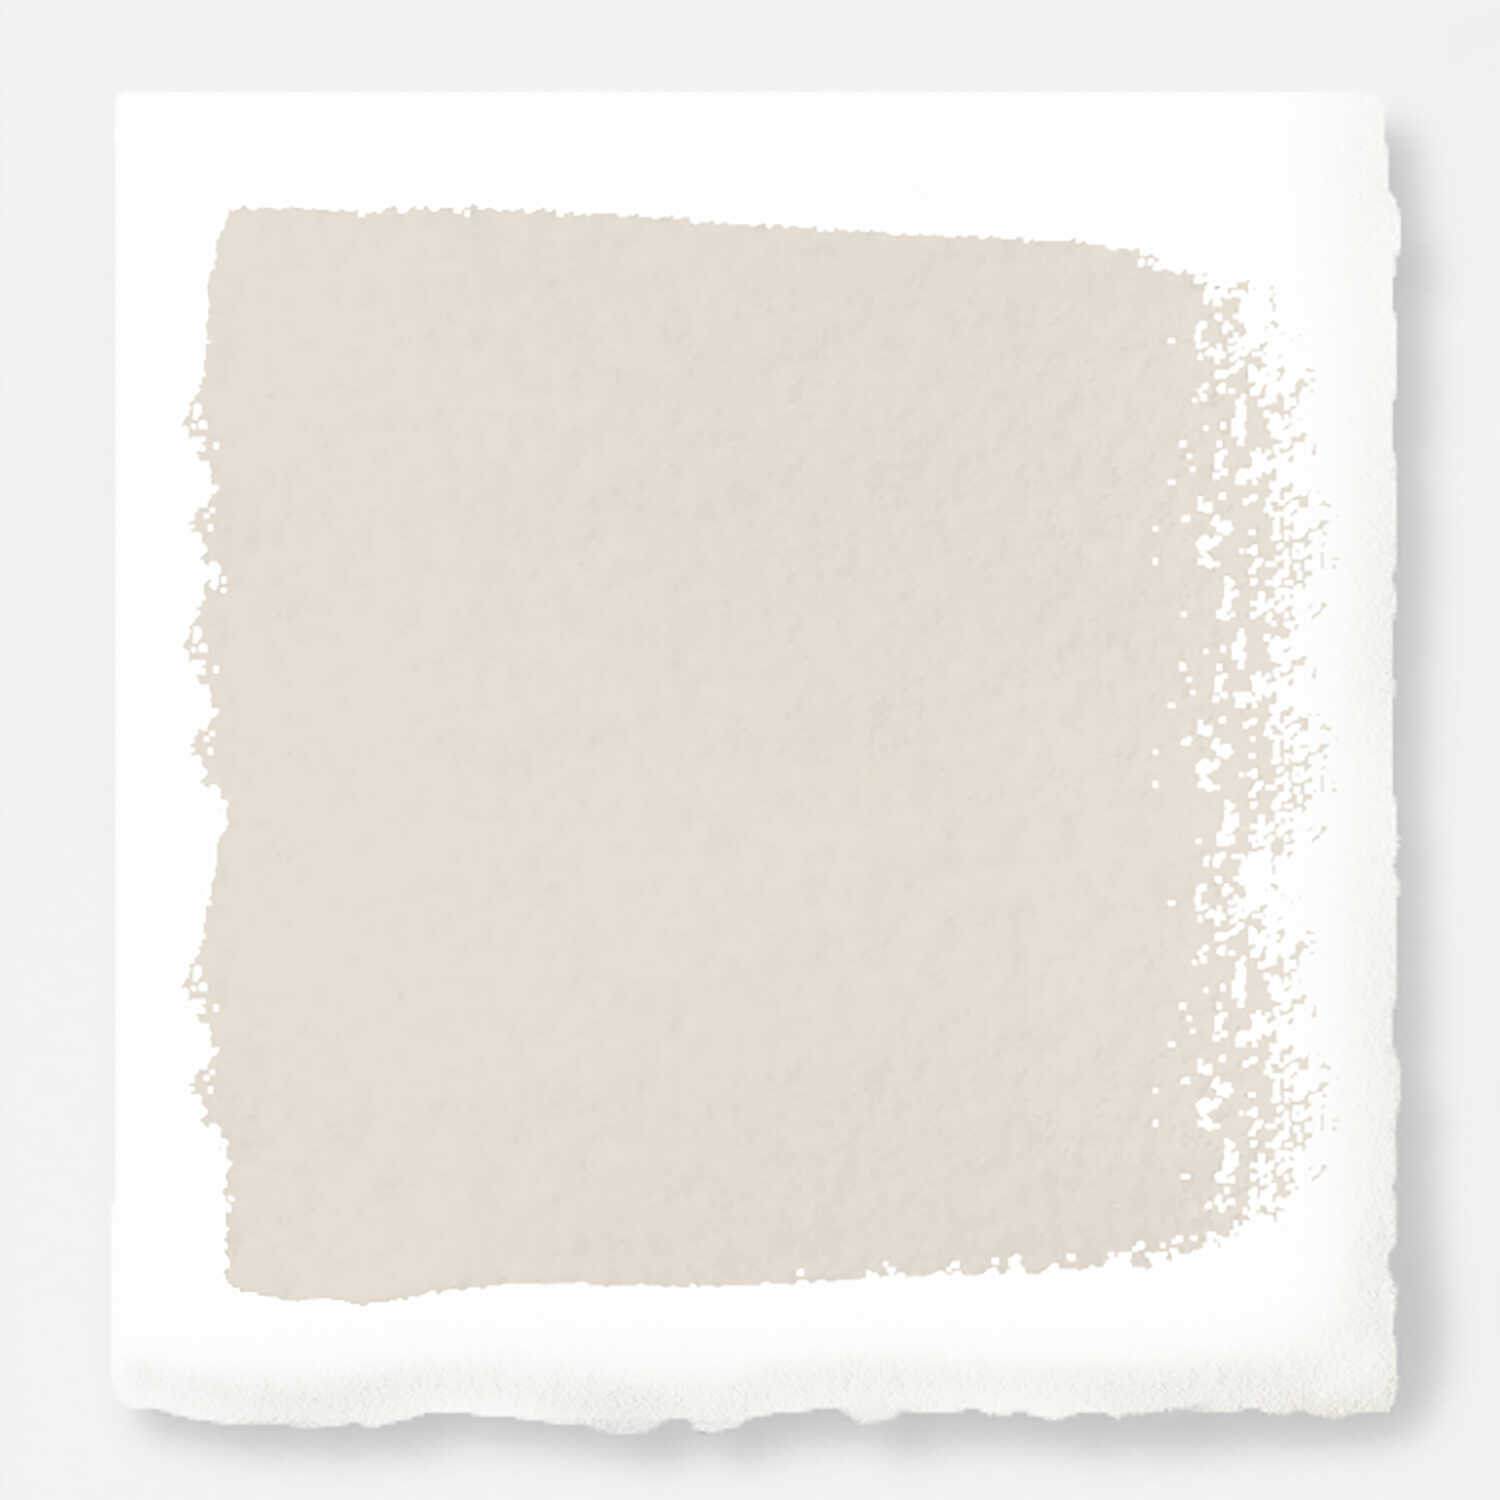 Magnolia Home  Flat  Soft Linen  Exterior Paint and Primer  1 gal.